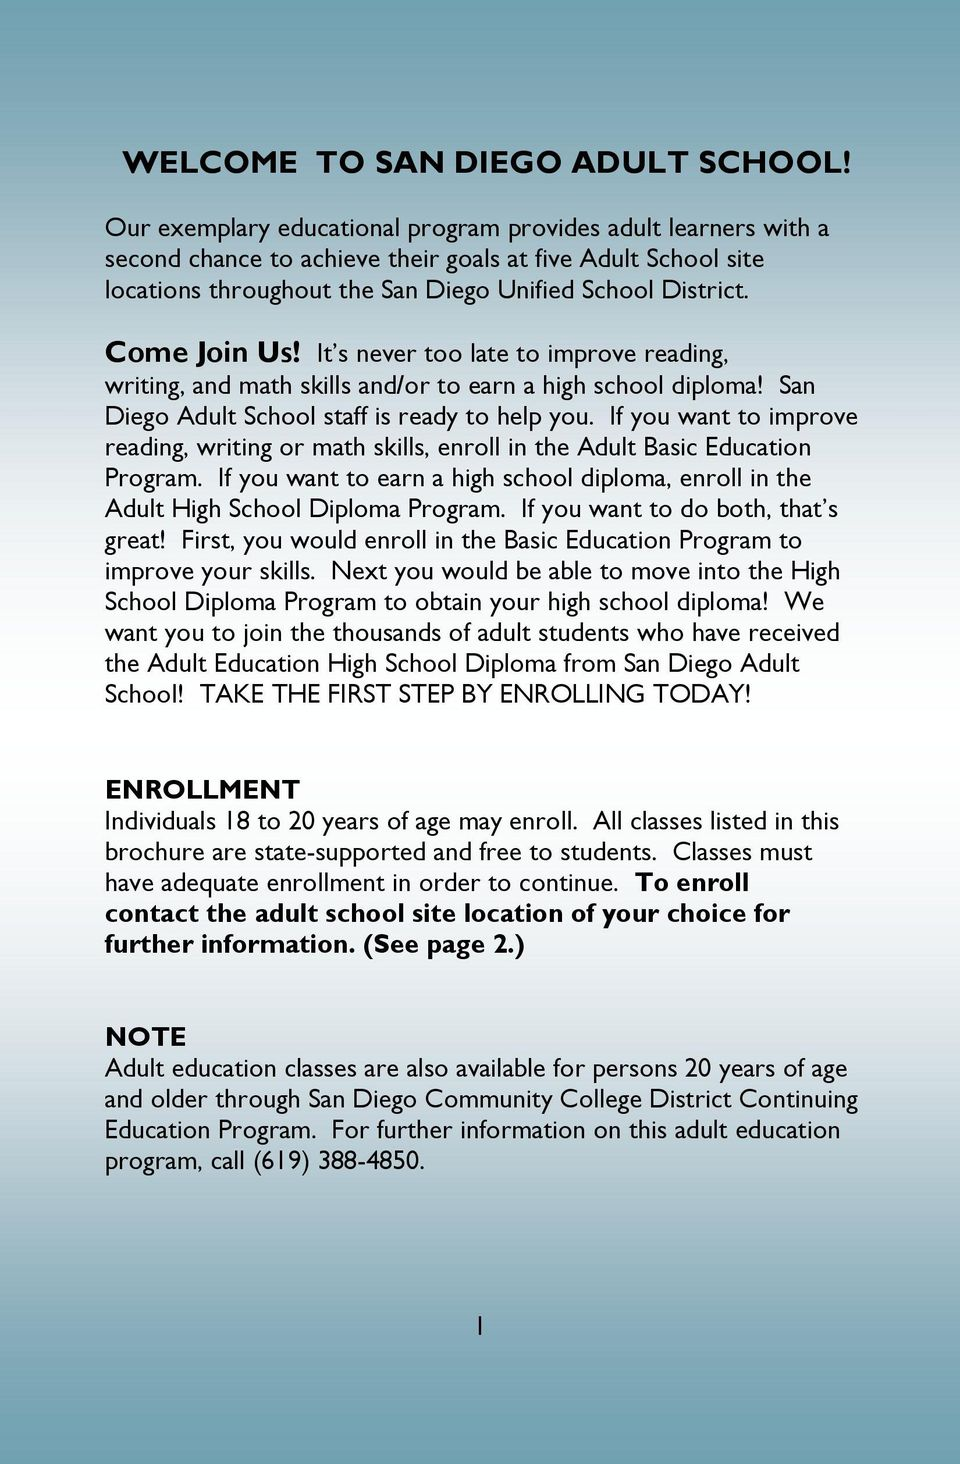 Come Join Us! It s never too late to improve reading, writing, and math skills and/or to earn a high school diploma! San Diego Adult School staff is ready to help you.